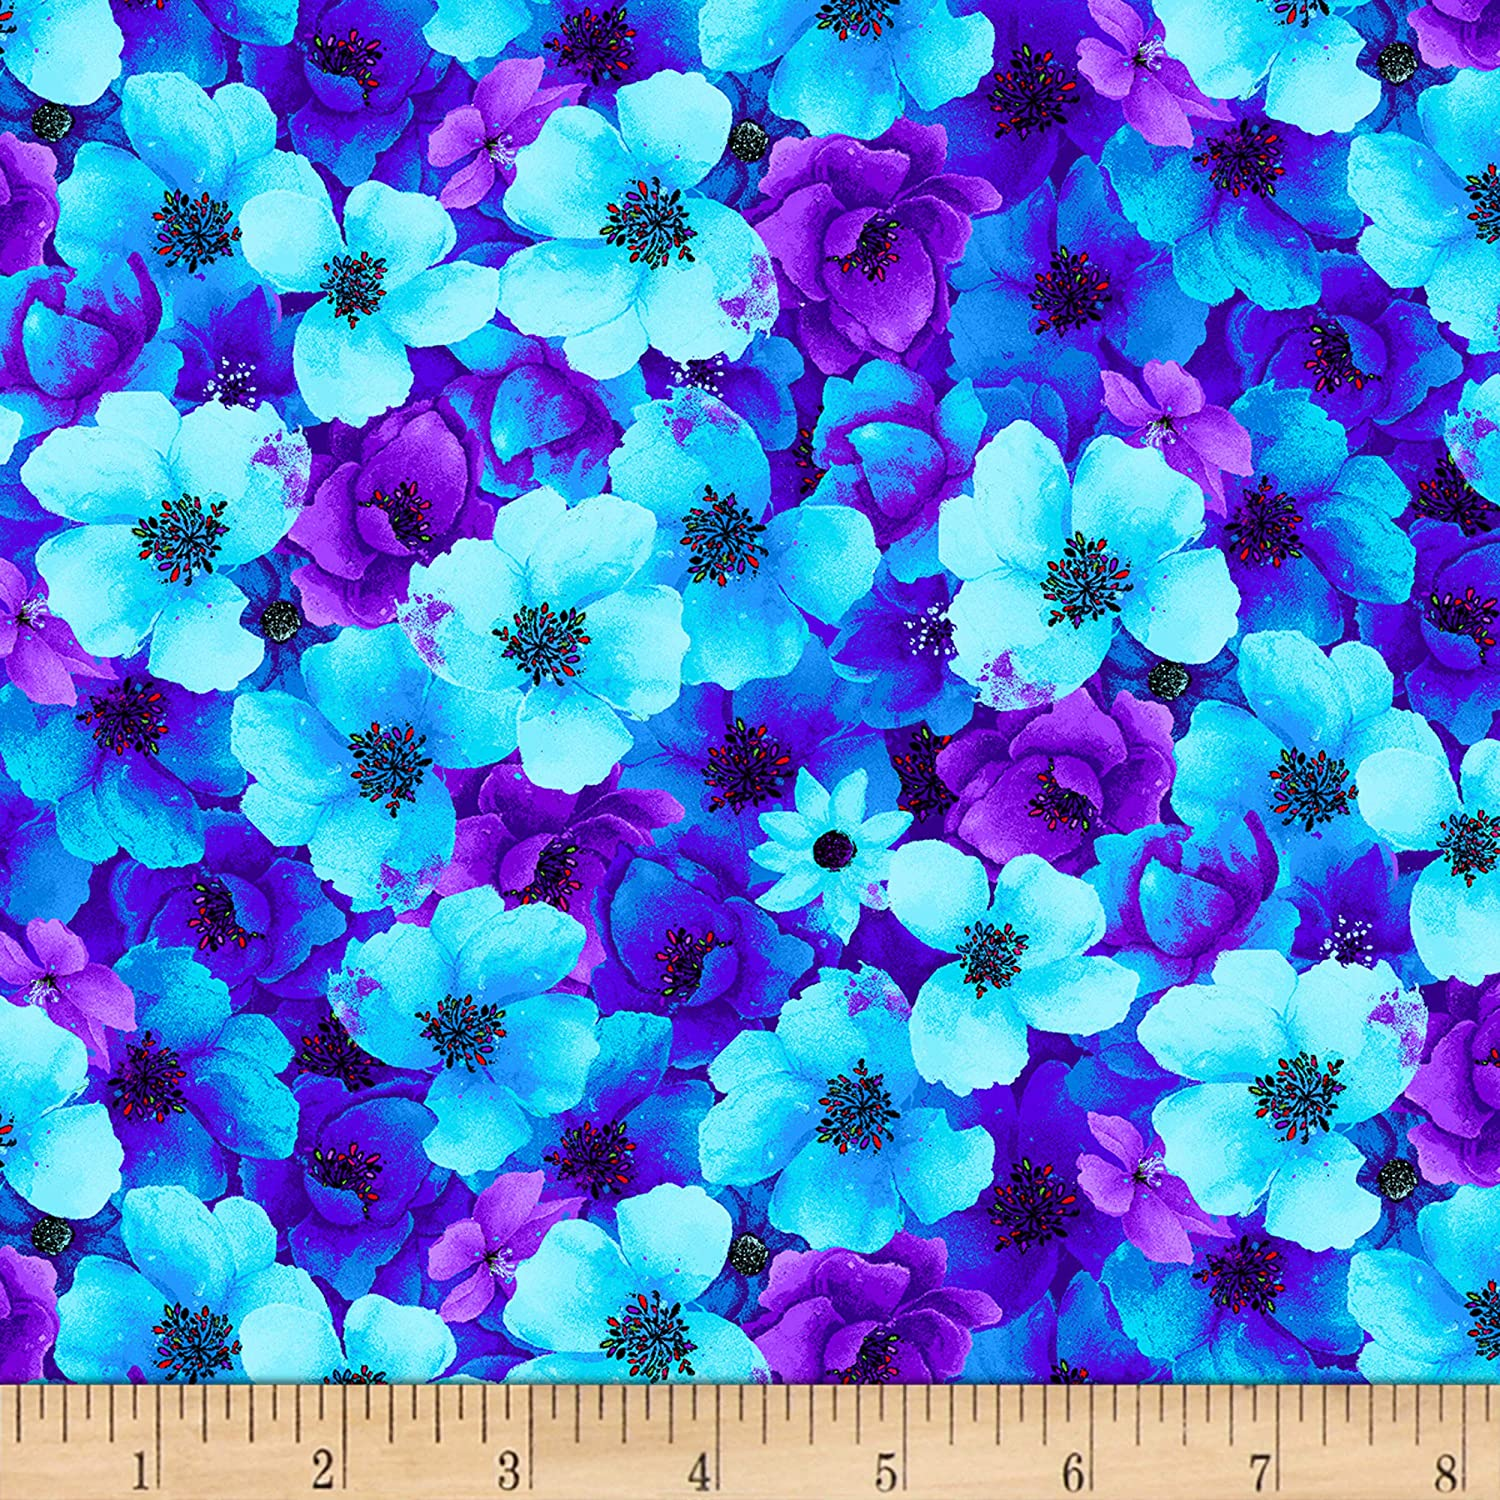 Timeless Treasures Night Bloom Packed Floral Aqua Fabric by The Yard